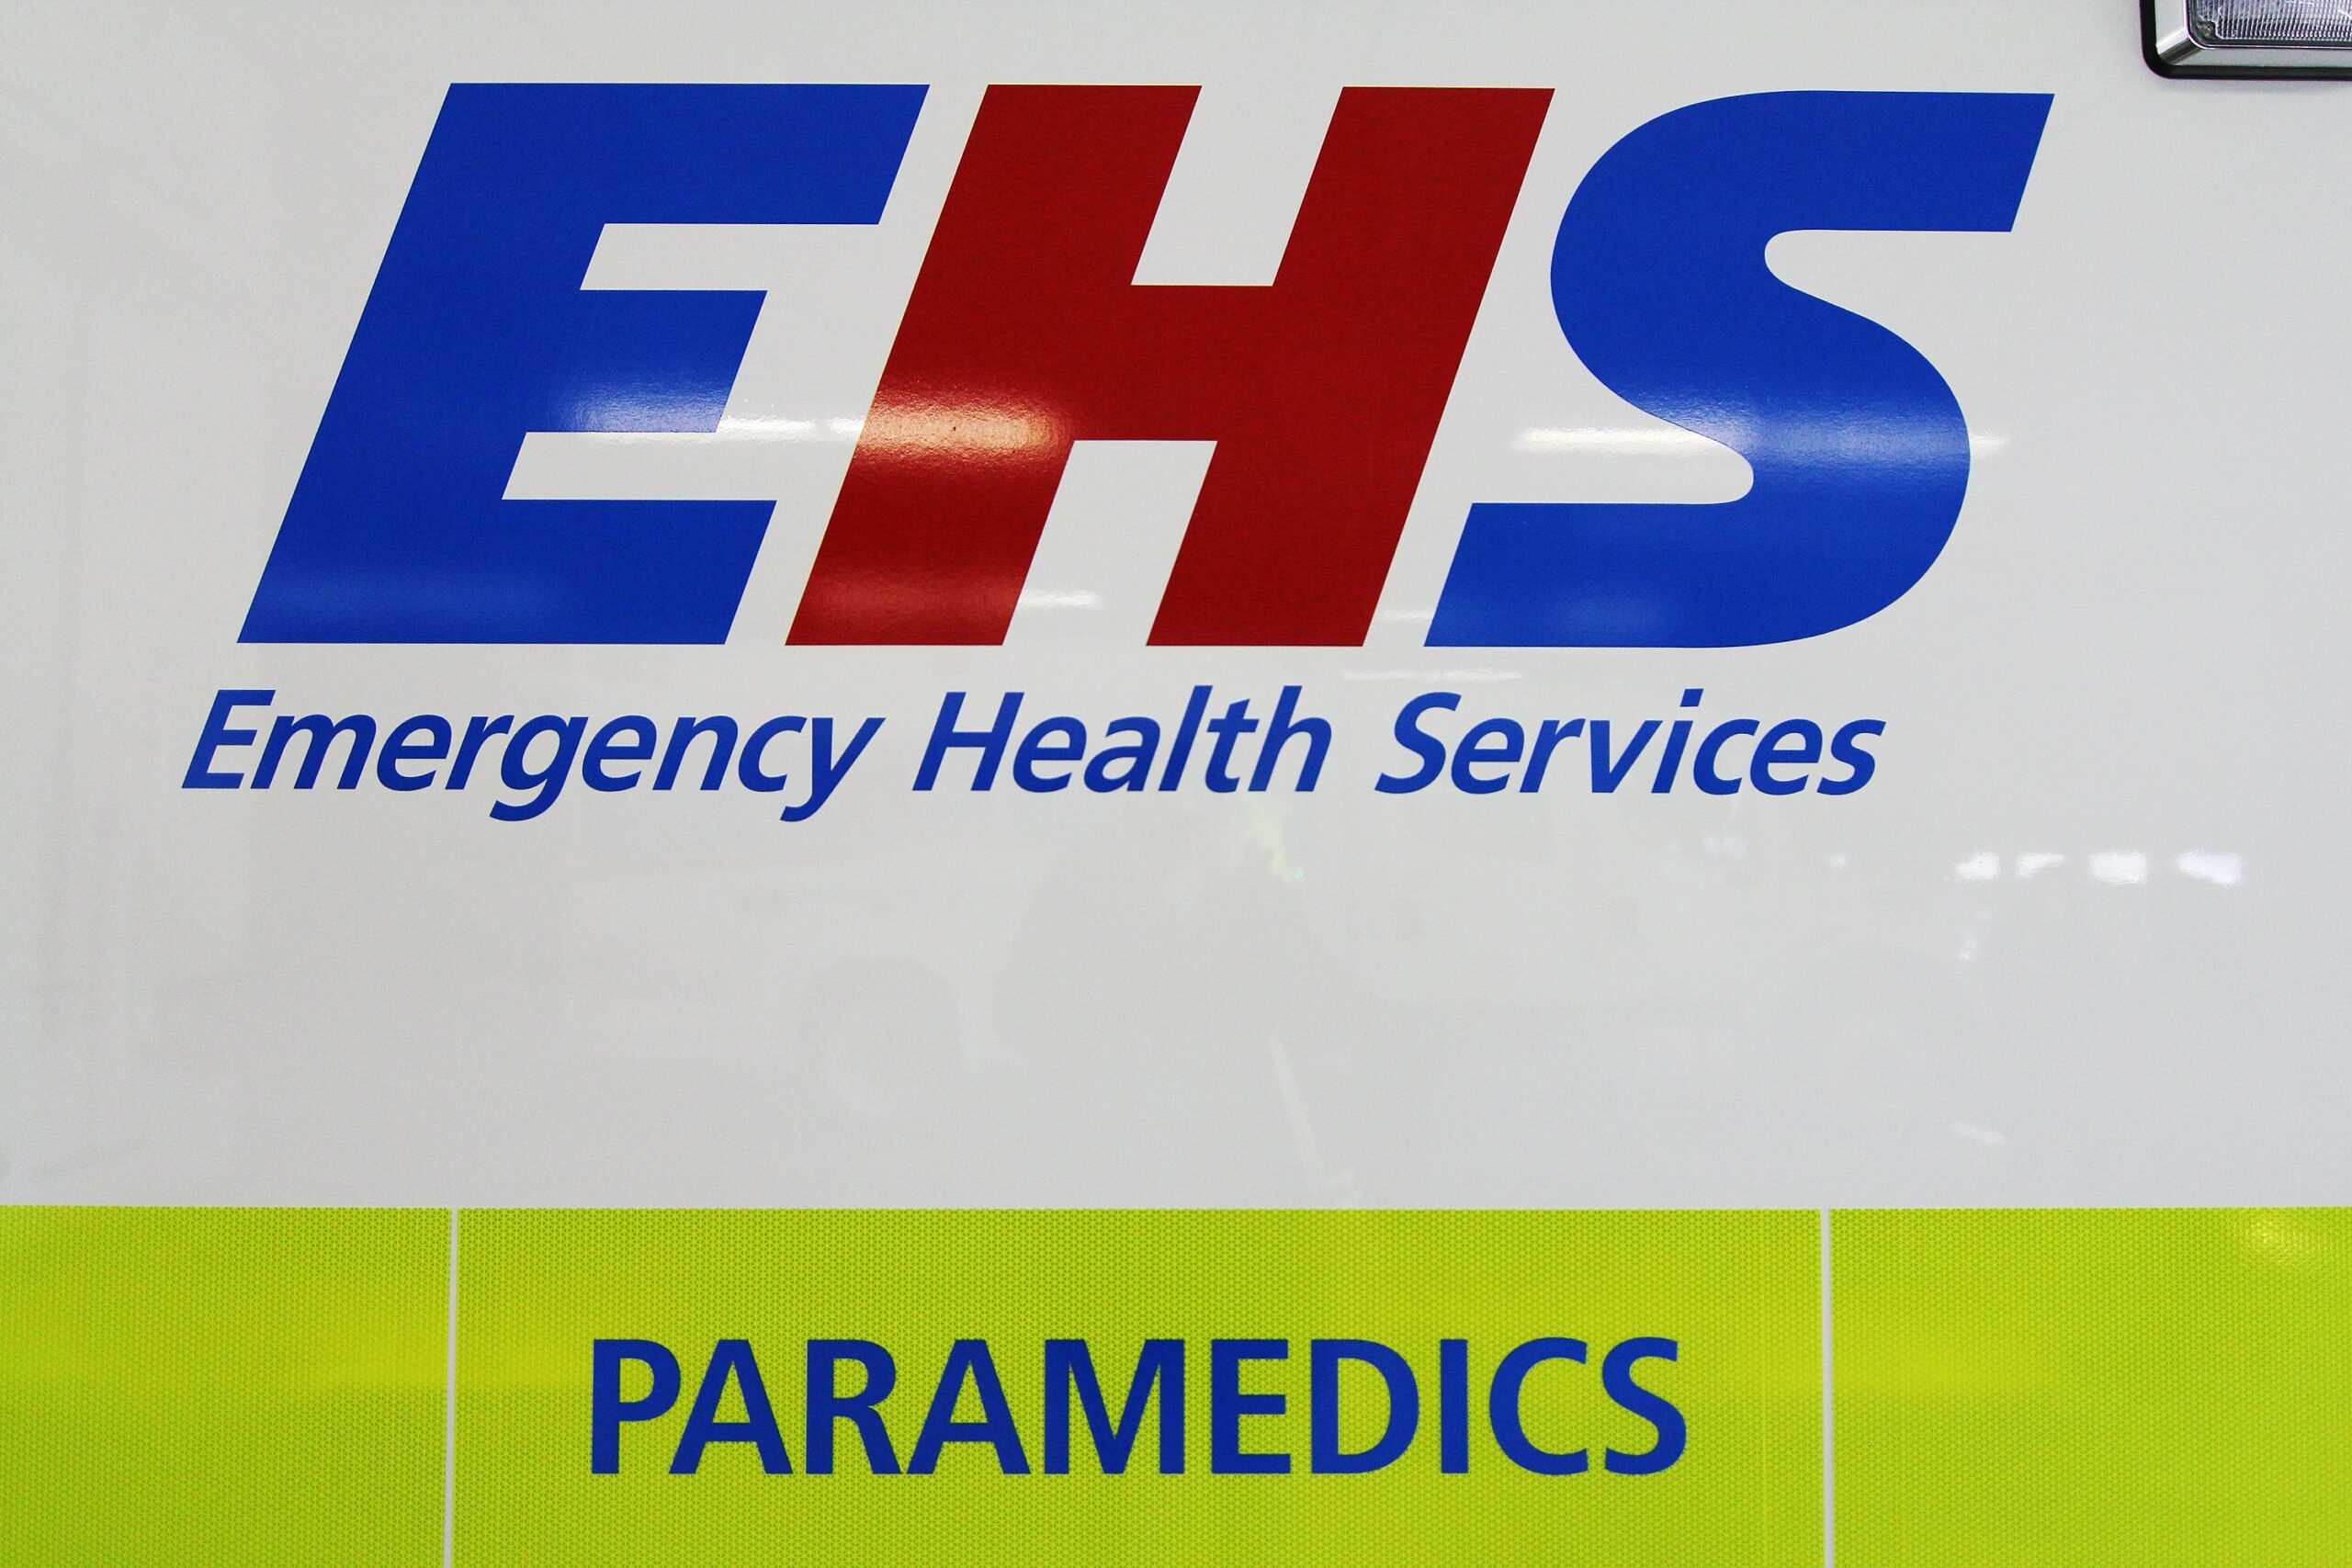 The Emergency Health Services (EHS) logo on a white ambulance. The E and S are royal blue, the S is red. Emergency Health Services is written below in italic font, and the word paramedics is below that in blue capital letters on a high visibility green stripe.